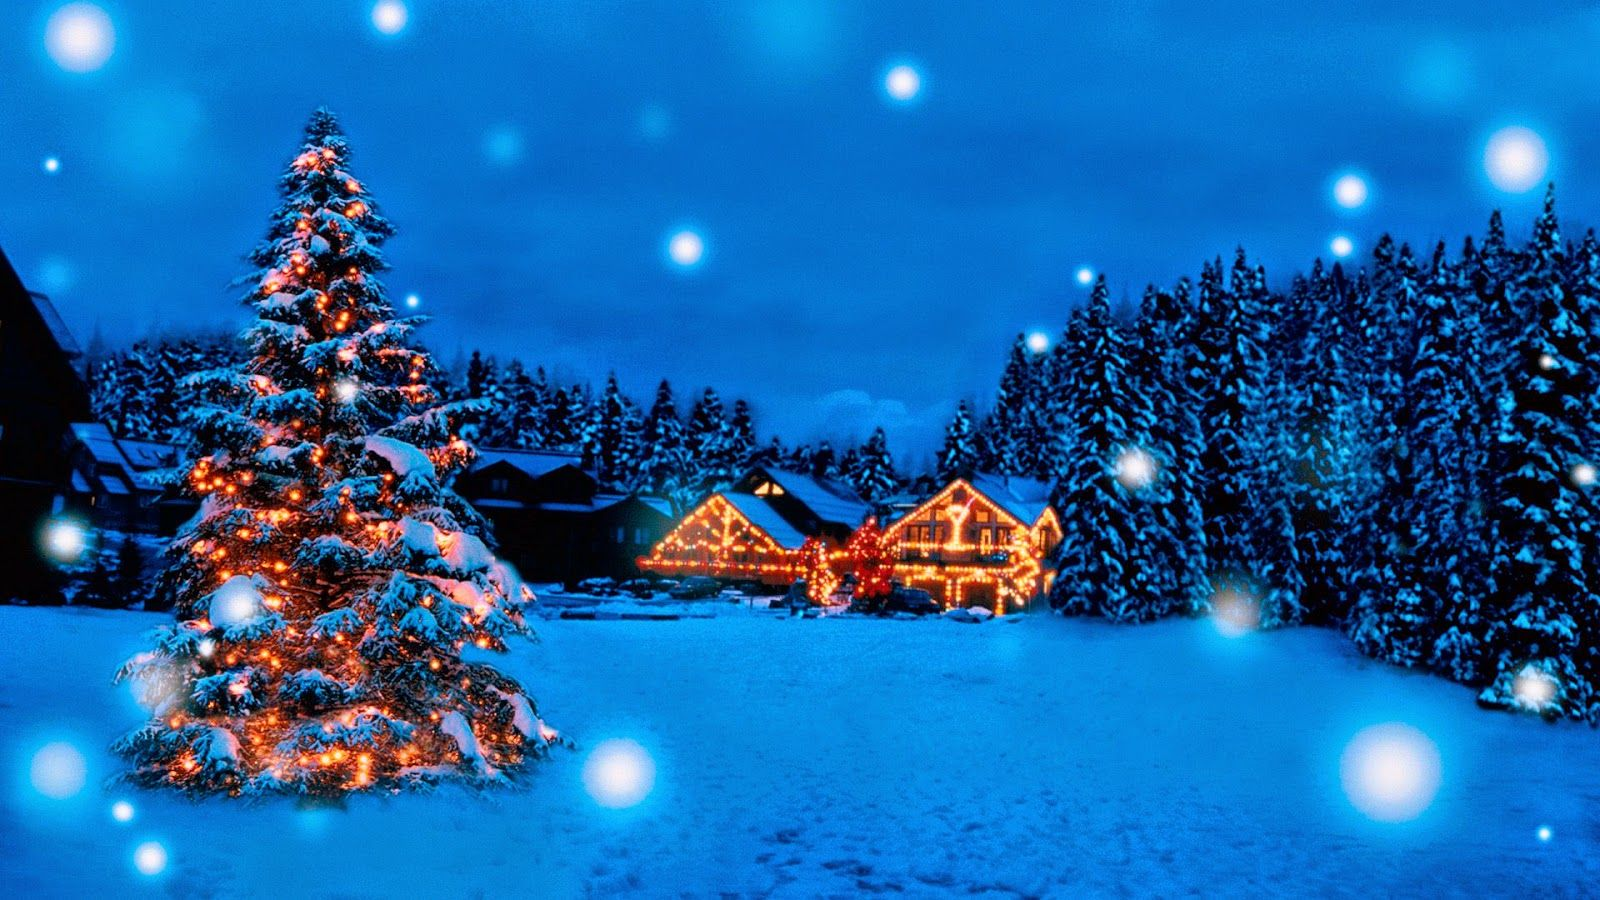 Free Christmas Wallpaper Backgrounds.64 Free Christmas Computer Wallpaper Backgrounds On